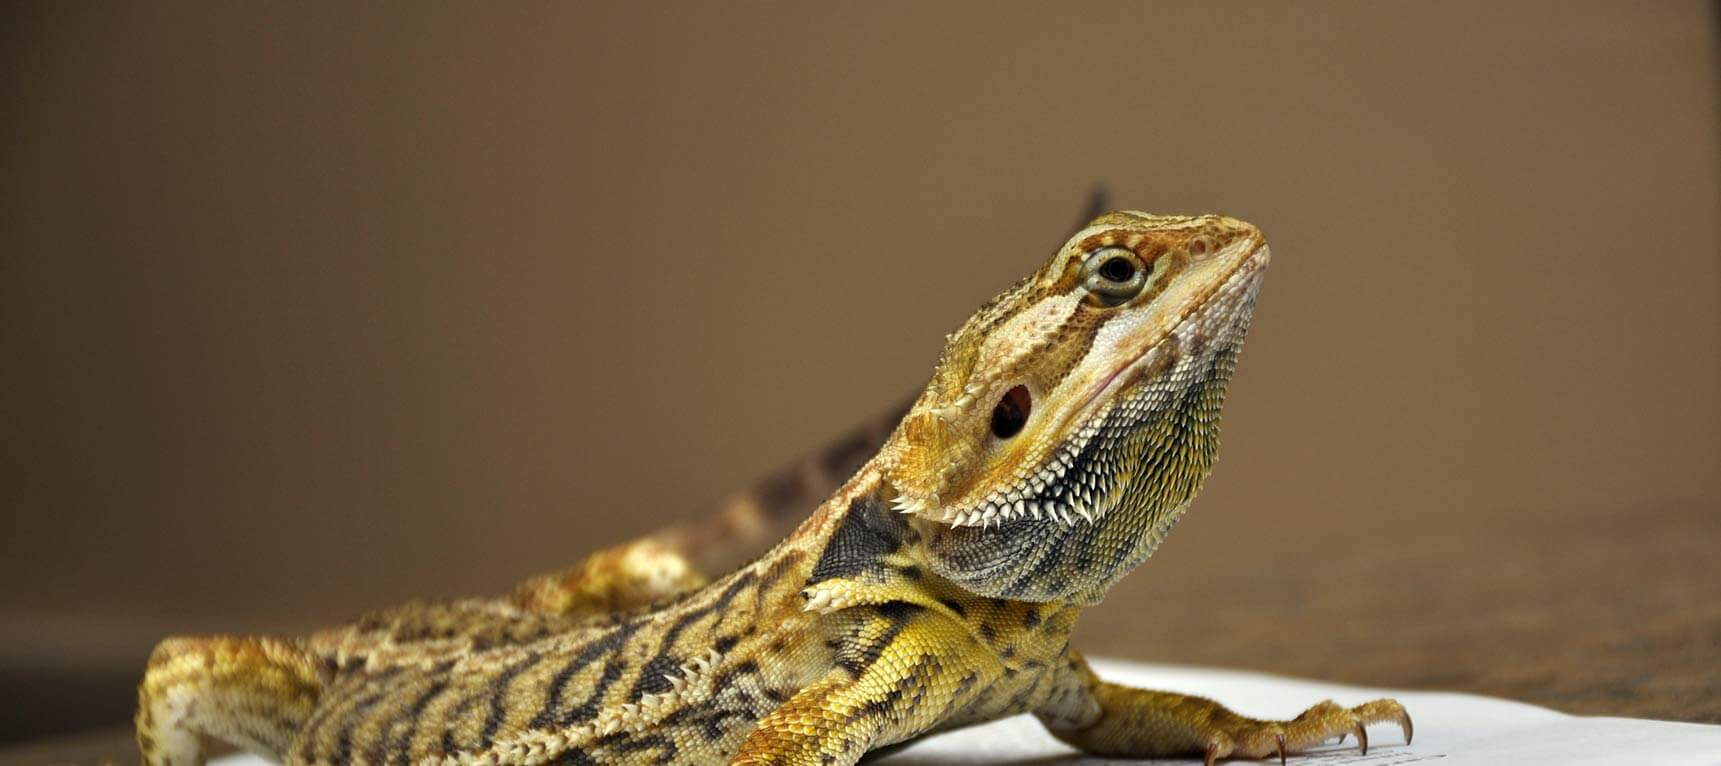 Reptile Veterinarians in Virginia Beach VA